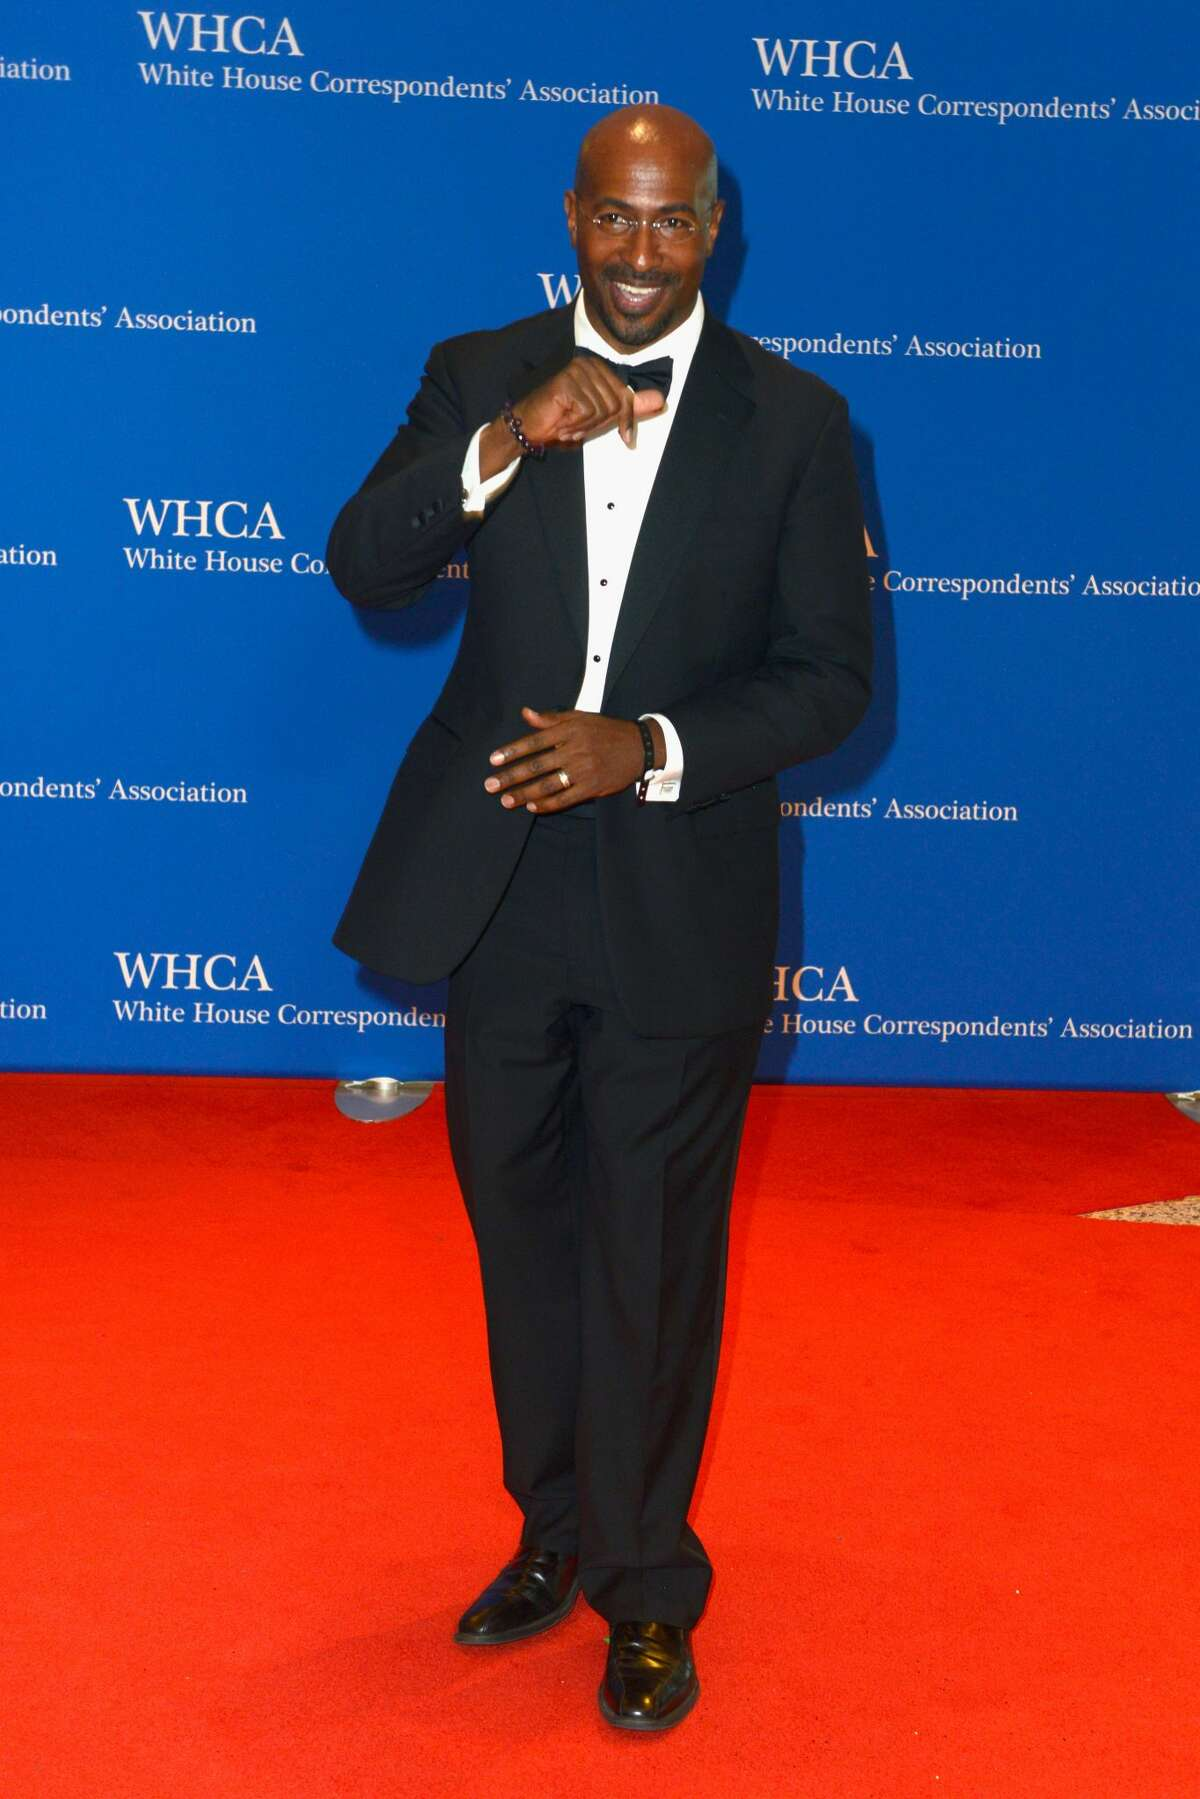 Commentator Van Jones attends the 2017 White House Correspondents' Association Dinner at Washington Hilton on April 29, 2017 in Washington, DC. (Photo by Leigh Vogel/FilmMagic)